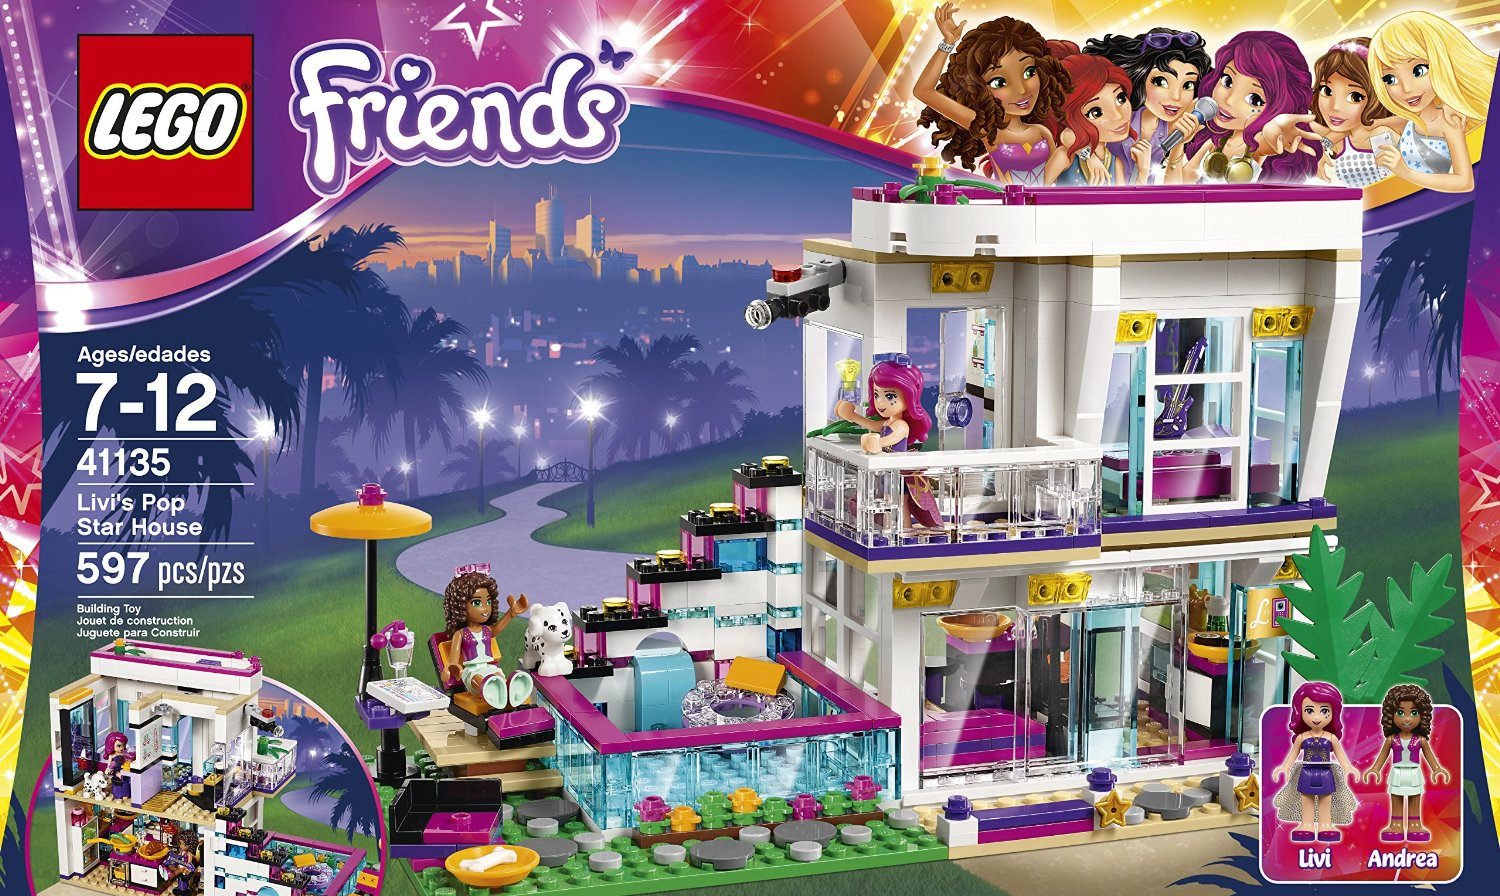 Used Bedroom Sets Shopping For Lego Friends Livi S Pop Star House 41135